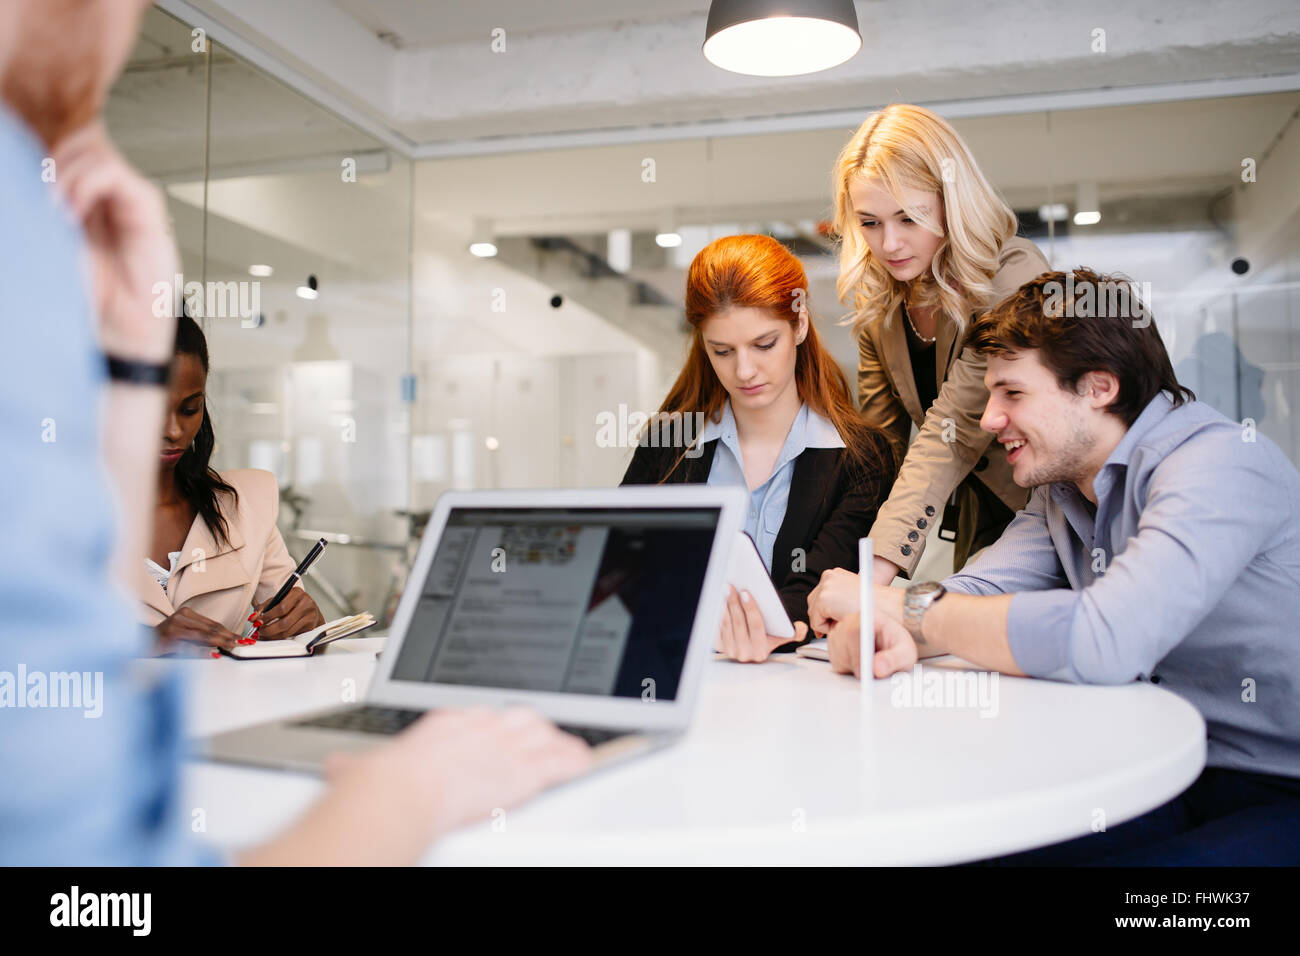 Businesspeople working in office and sharing ideas - Stock Image